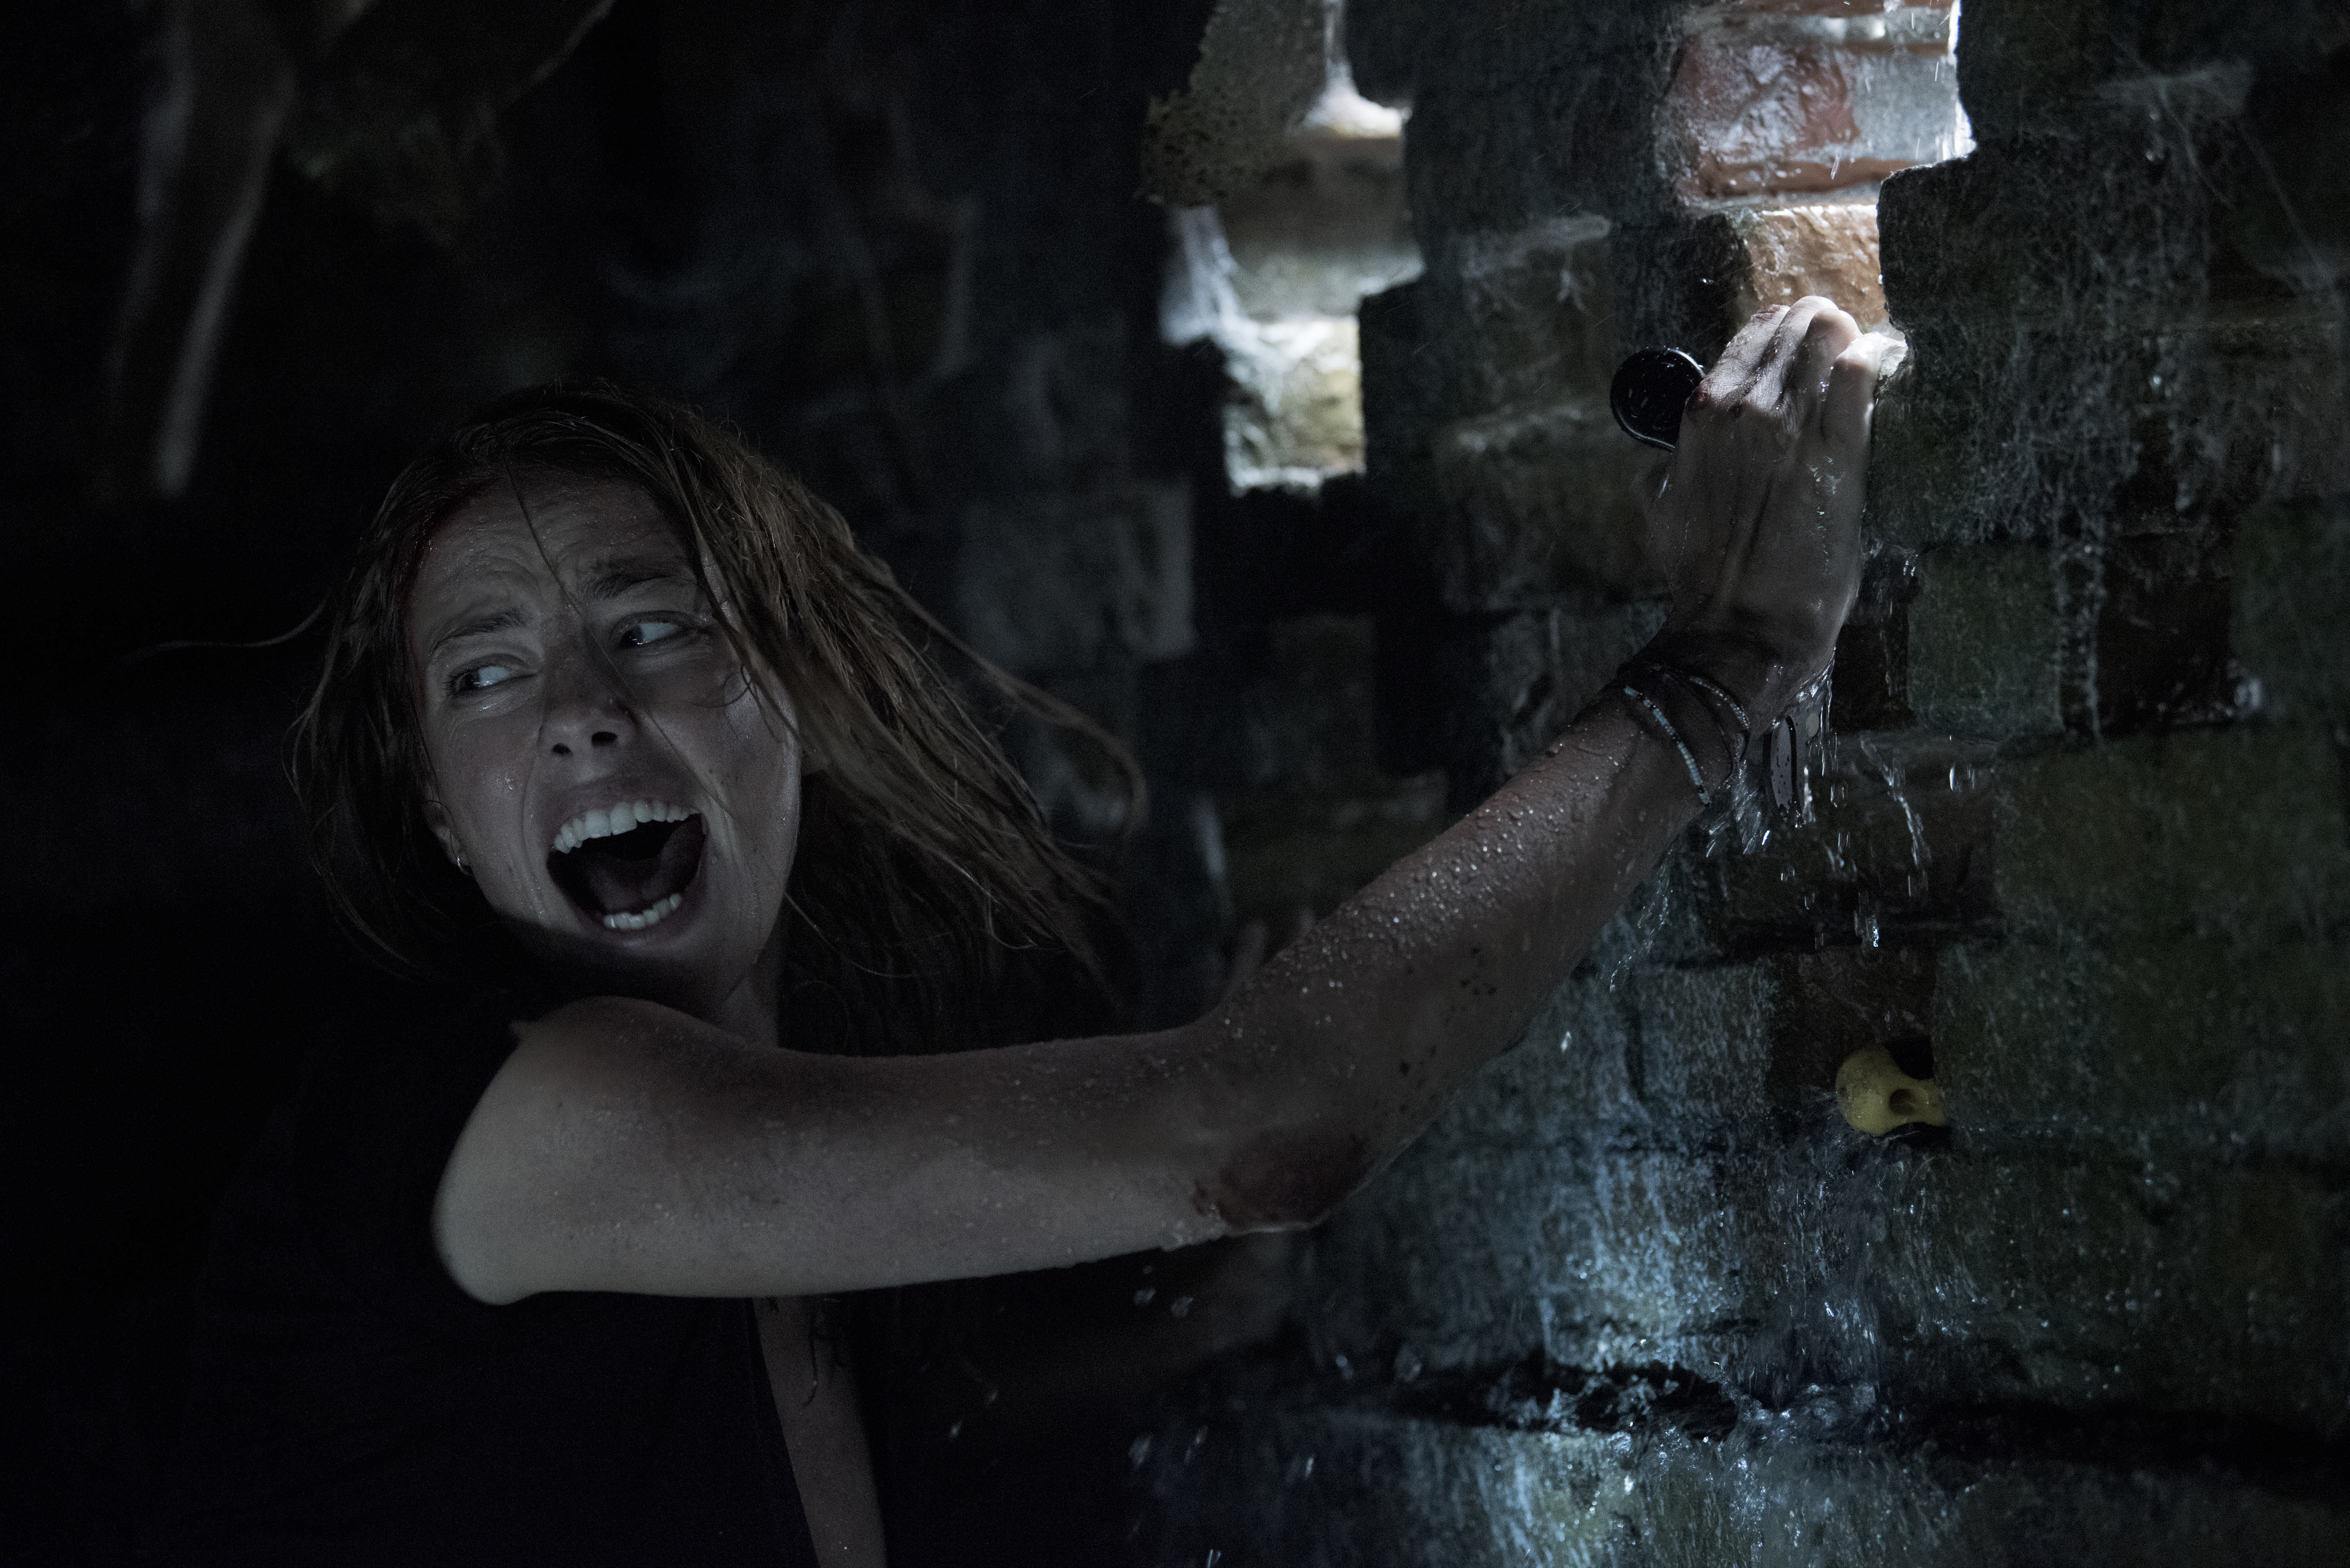 [News] Unimaginable Danger Lurks in the Water in the Trailer for CRAWL